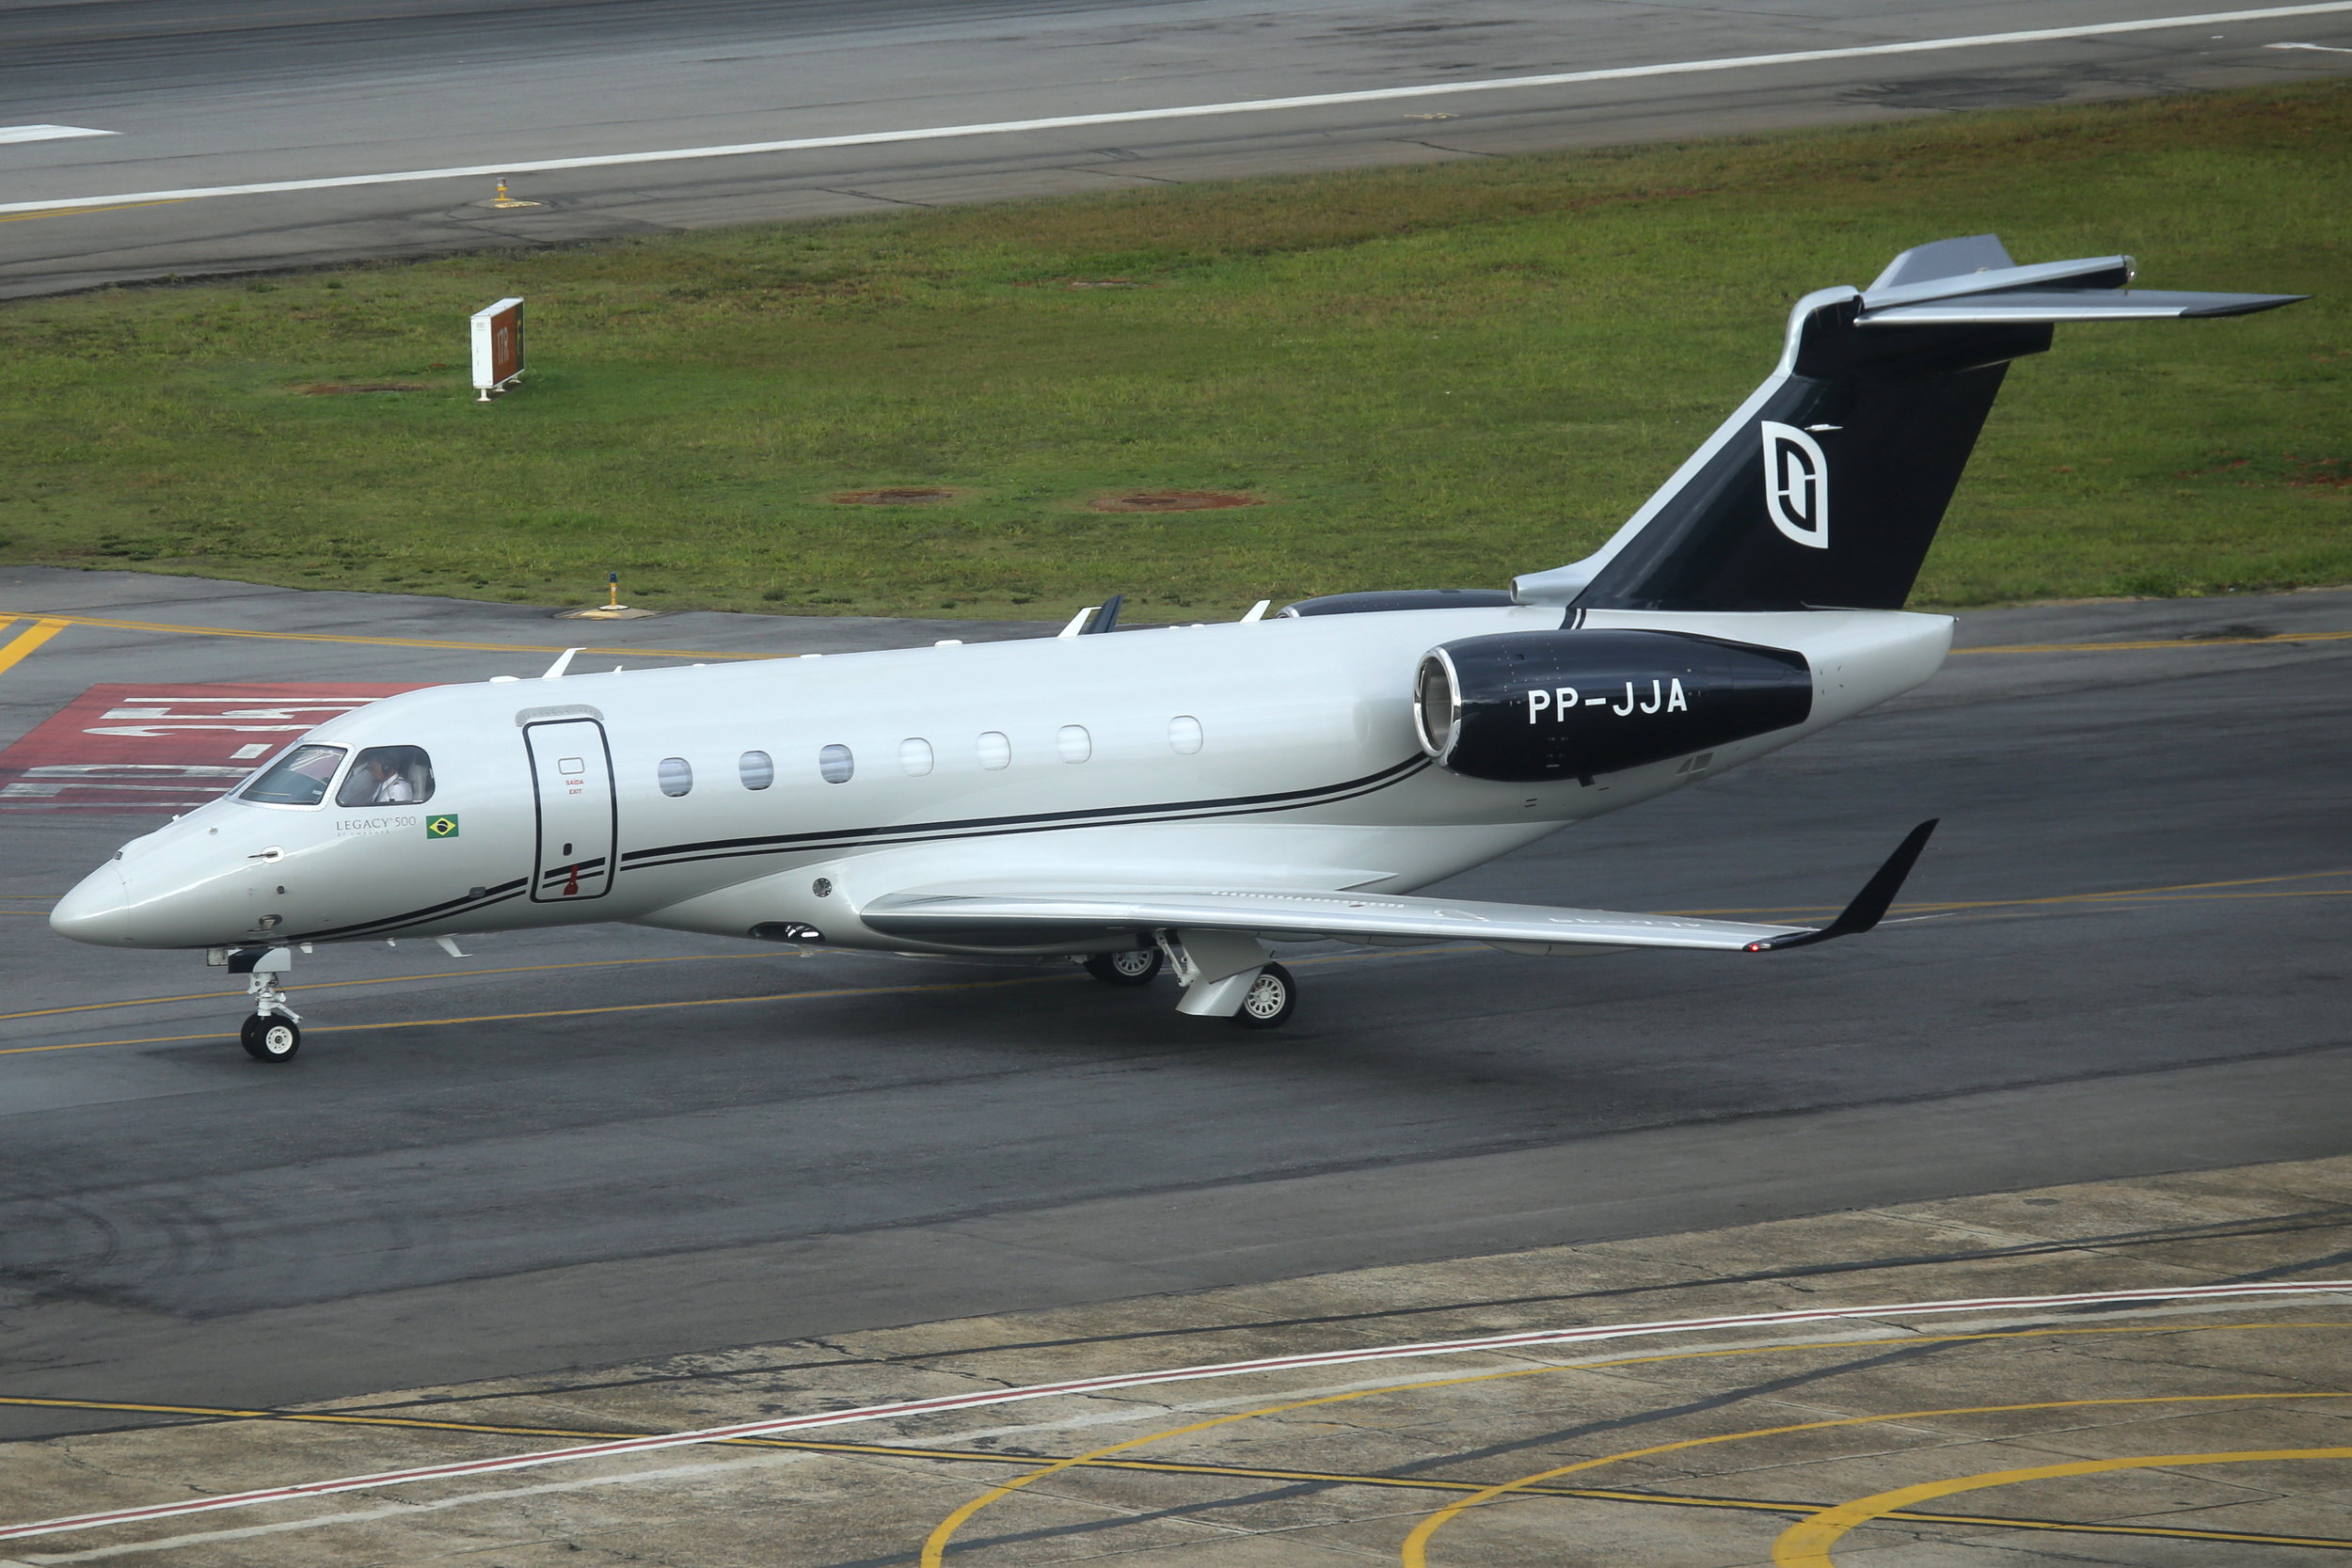 PP-JJA Embraer 550 Legacy 500 taken from the Slaveiro Slim hotel at Sao Paulo Congonhas Airport 29th April 2019 by John Wood